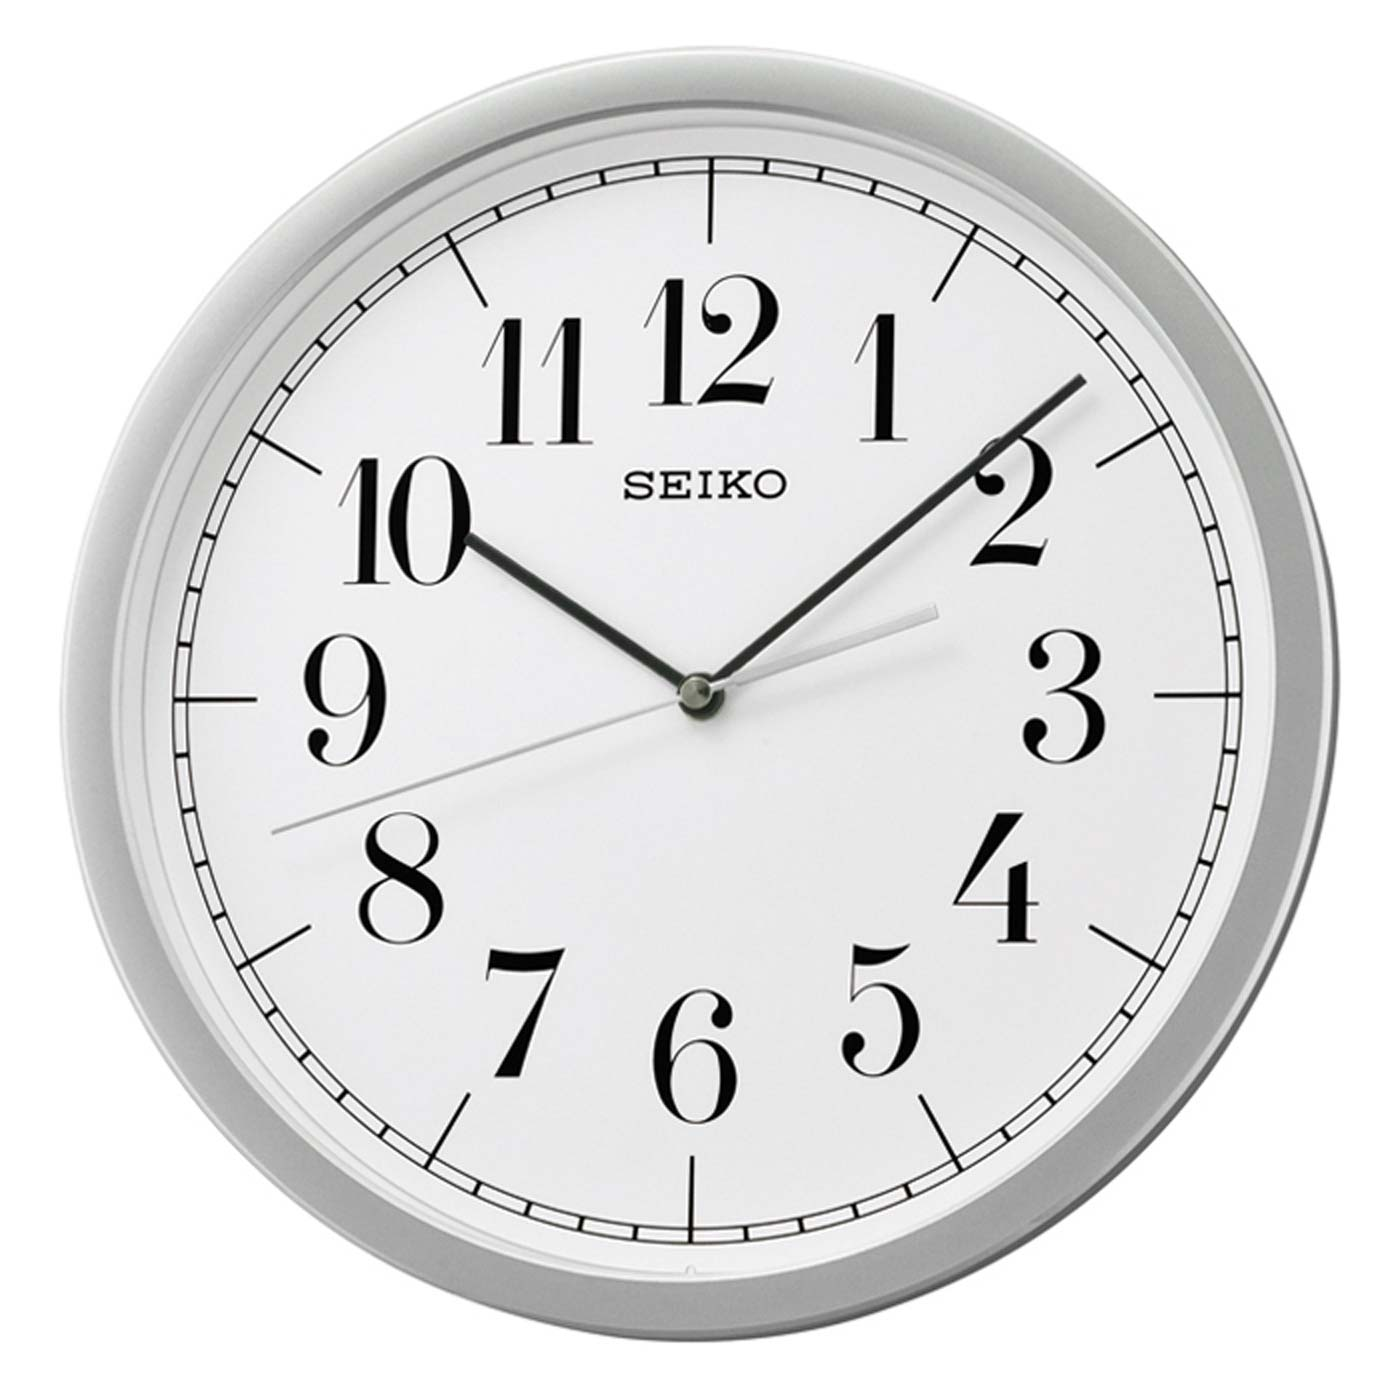 seiko qxa636s wanduhr b rouhr ger uschlose uhr uhren neu ebay. Black Bedroom Furniture Sets. Home Design Ideas